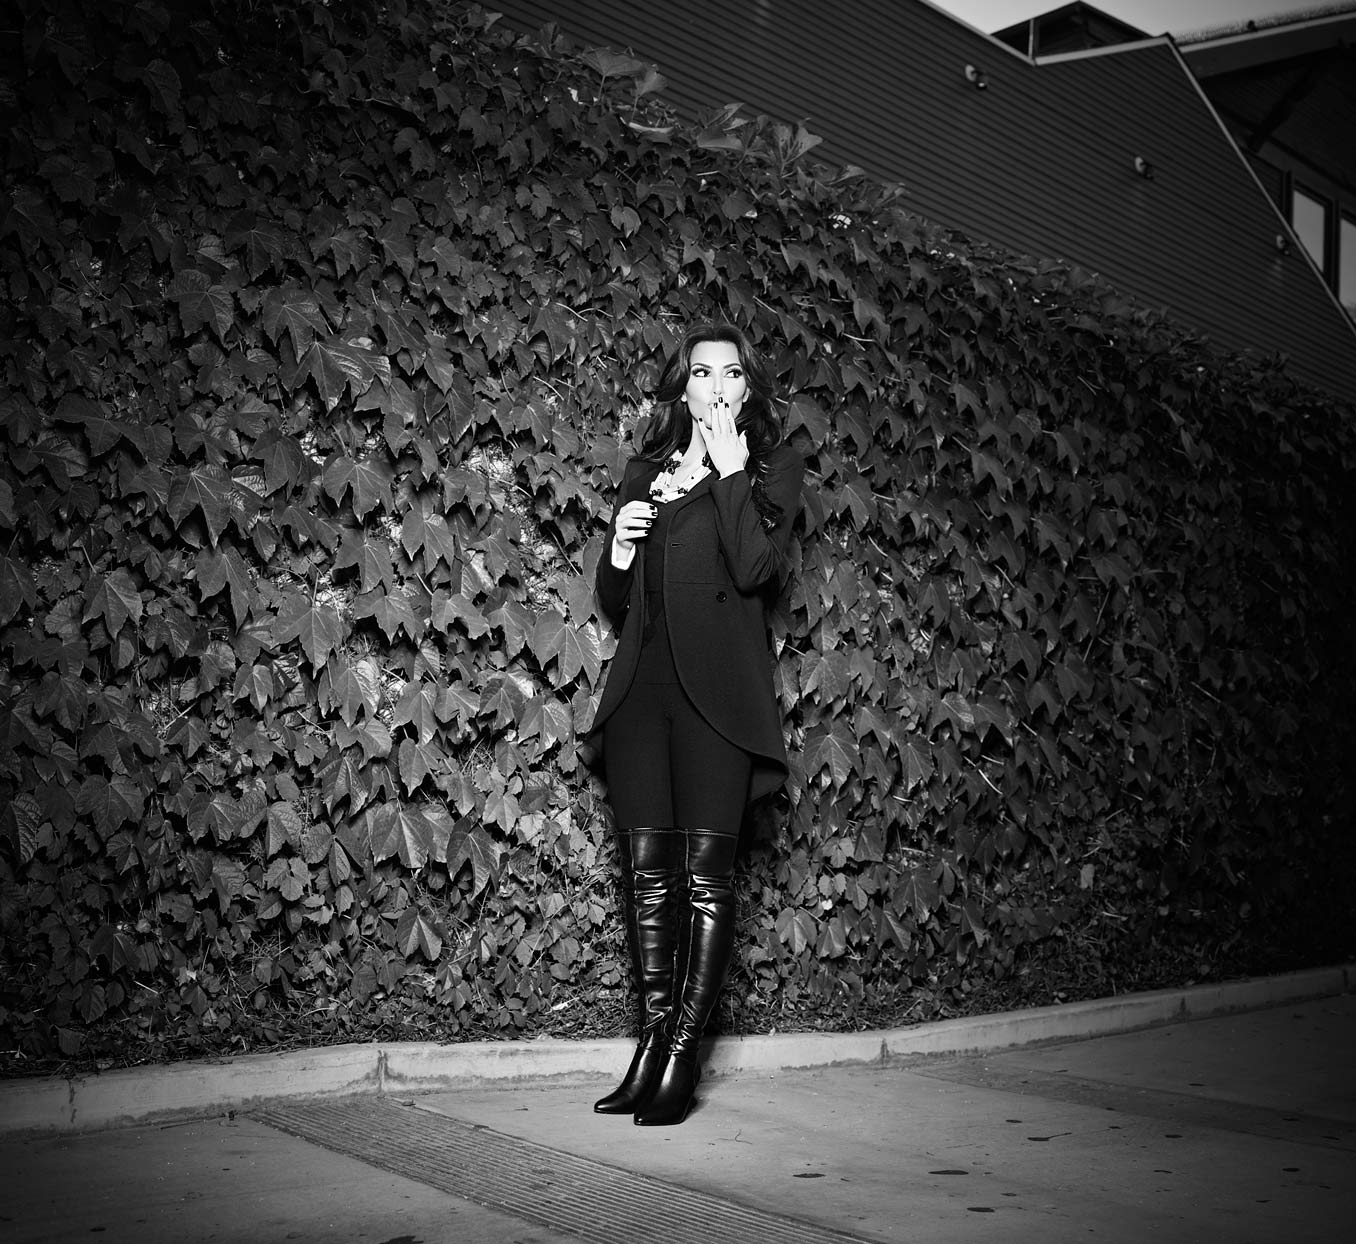 Mark DeLong - Celebrity Photographer - Black and white photo of a female celebrity standing in front of bushes in the spotlight.